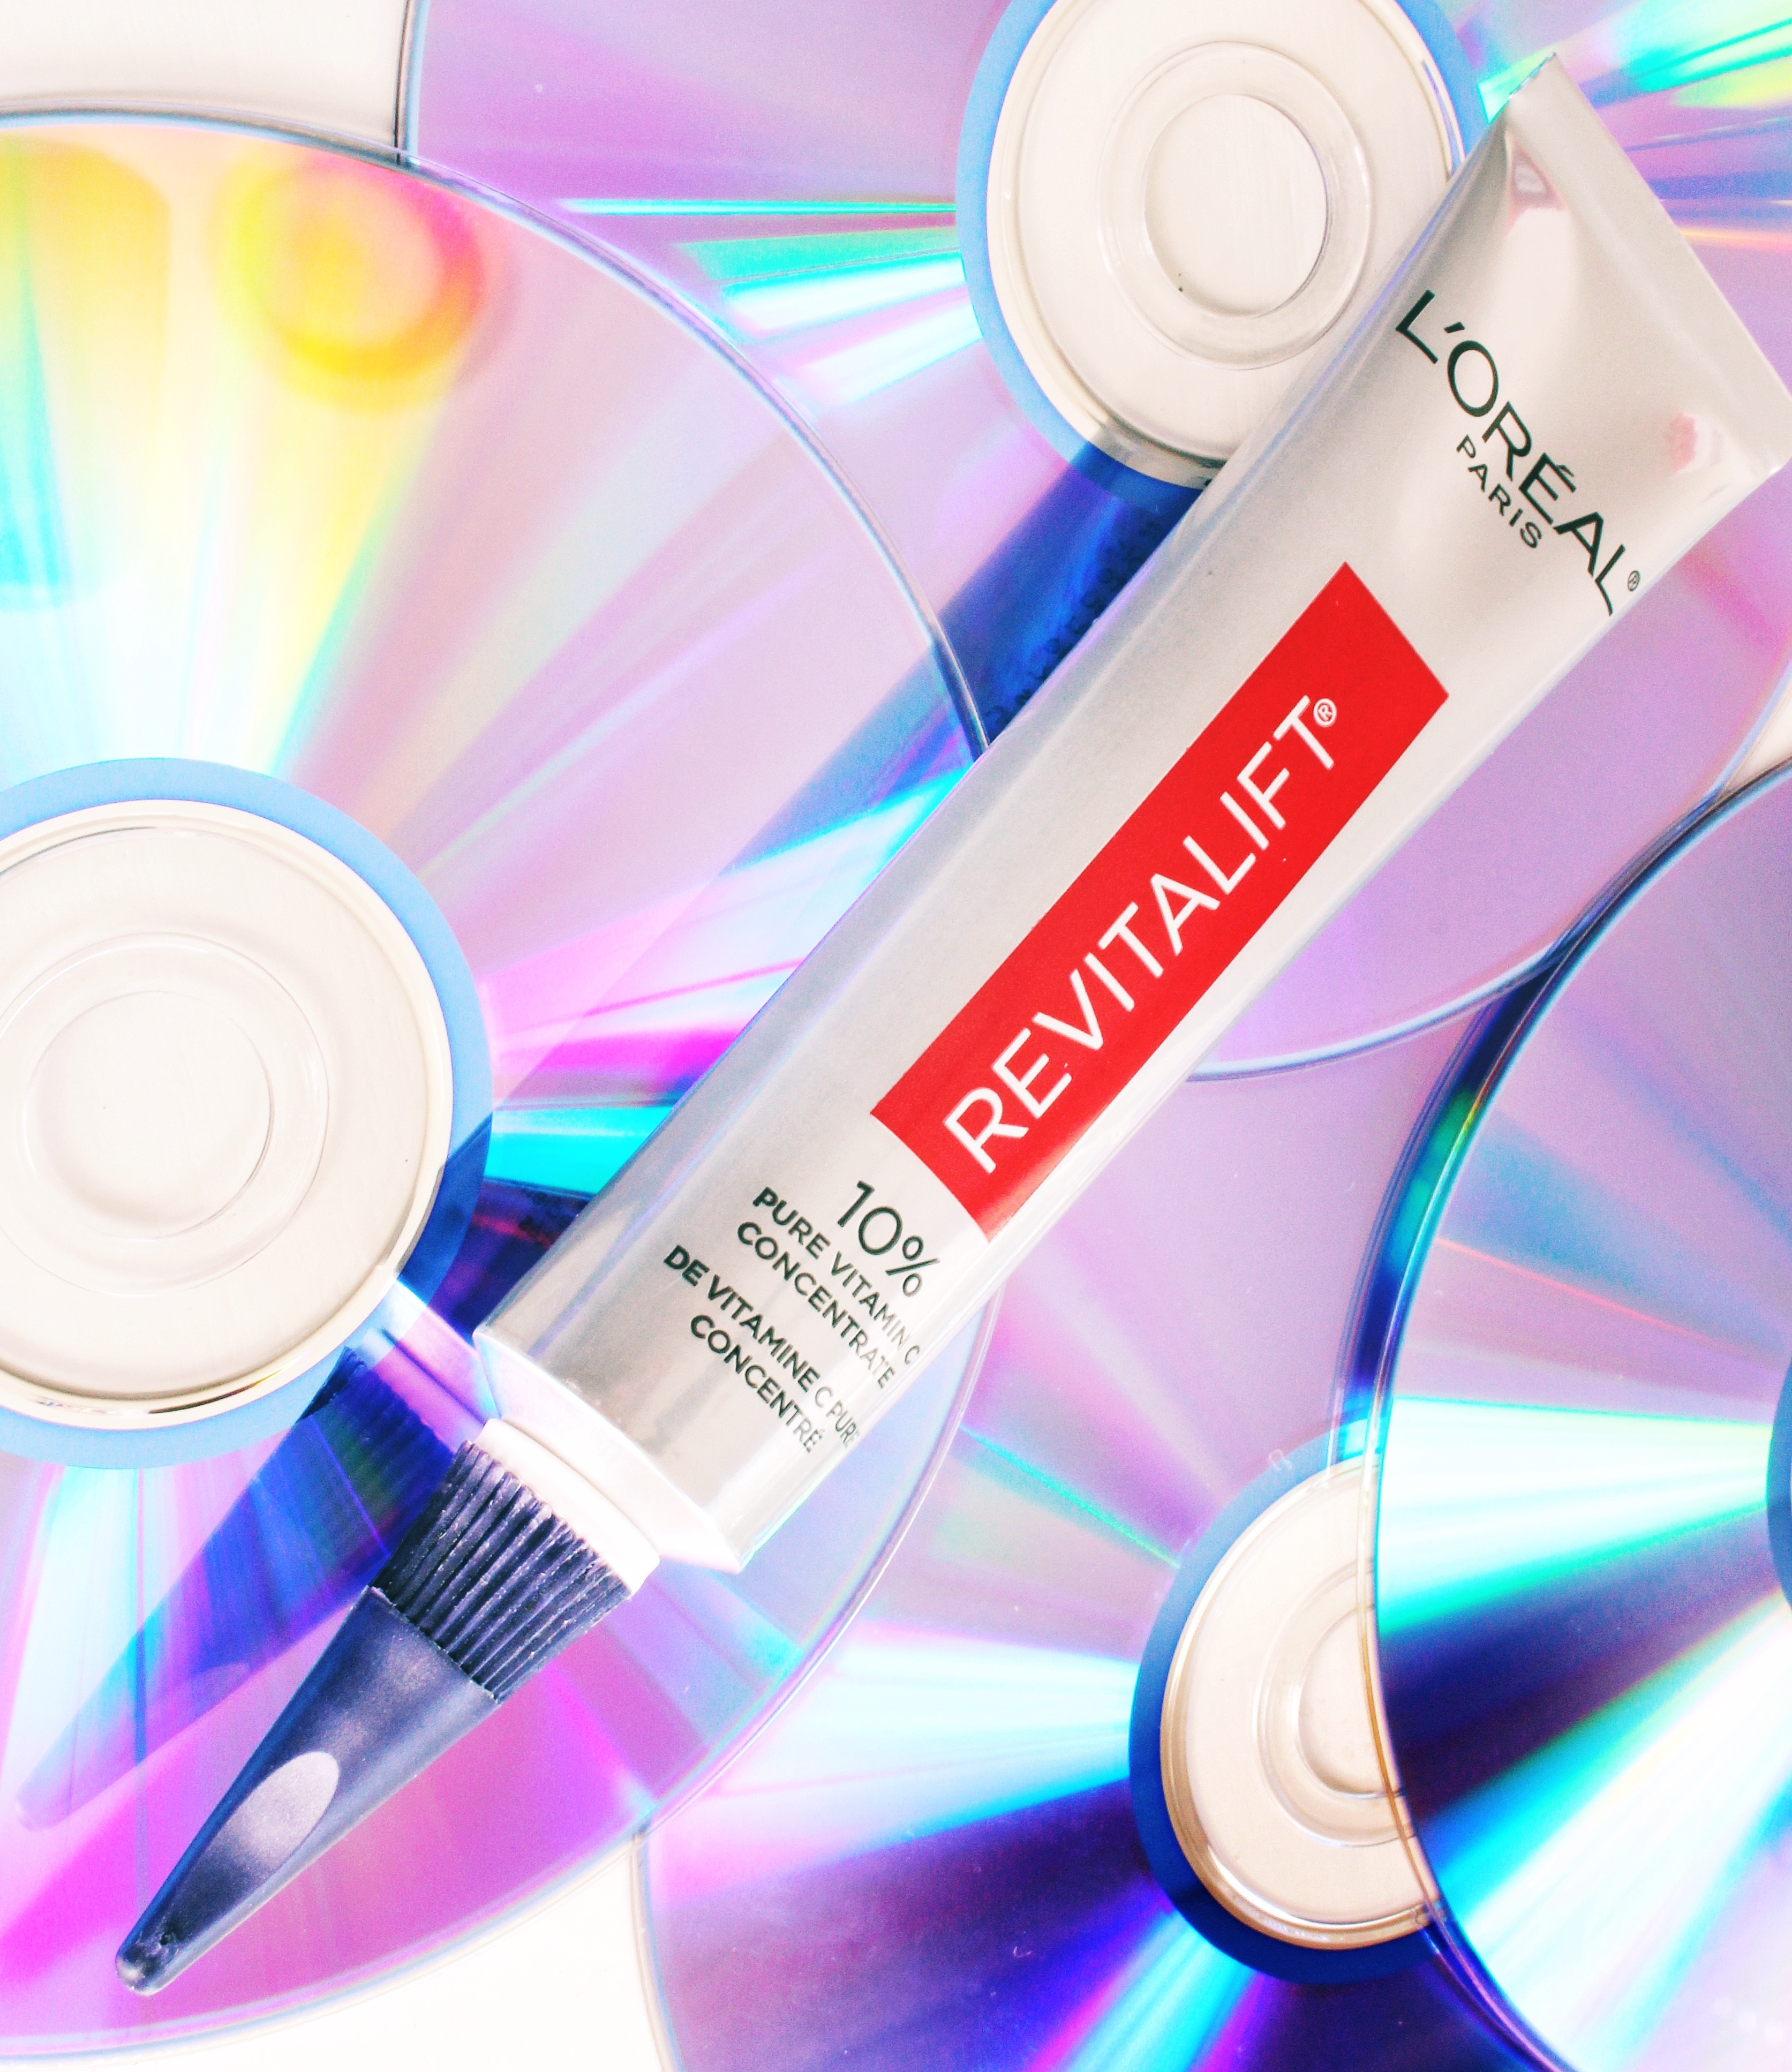 Revitalift Vitamin C Serum Review